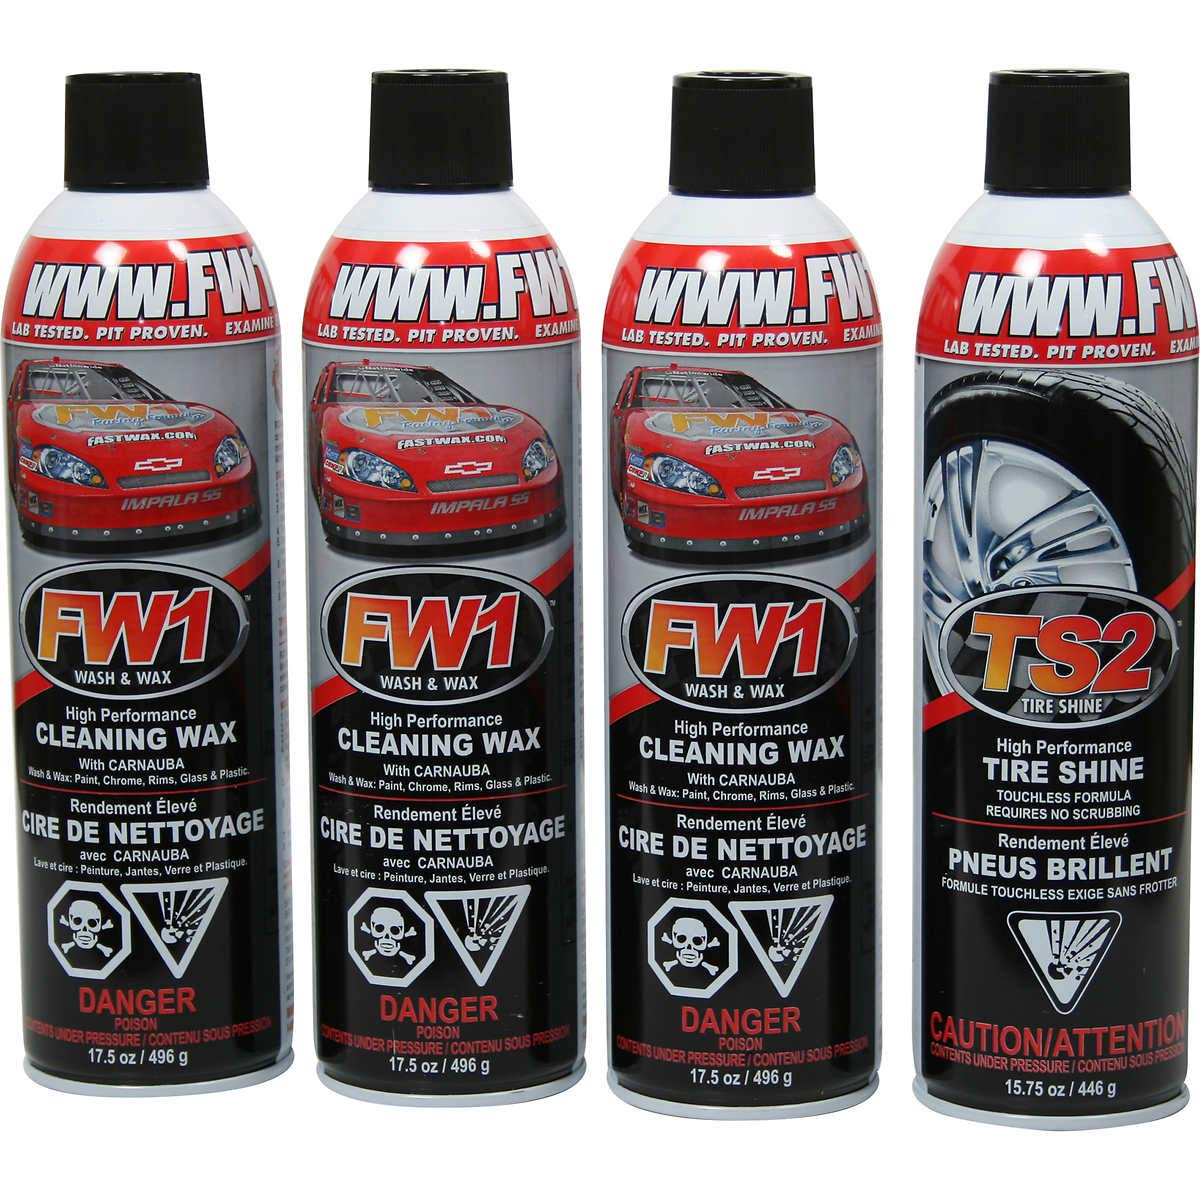 3 x FW1 High Performance Exterior Wash and Wax with Carnauba + 1 x TS2 Tire Shine Touchless Formula